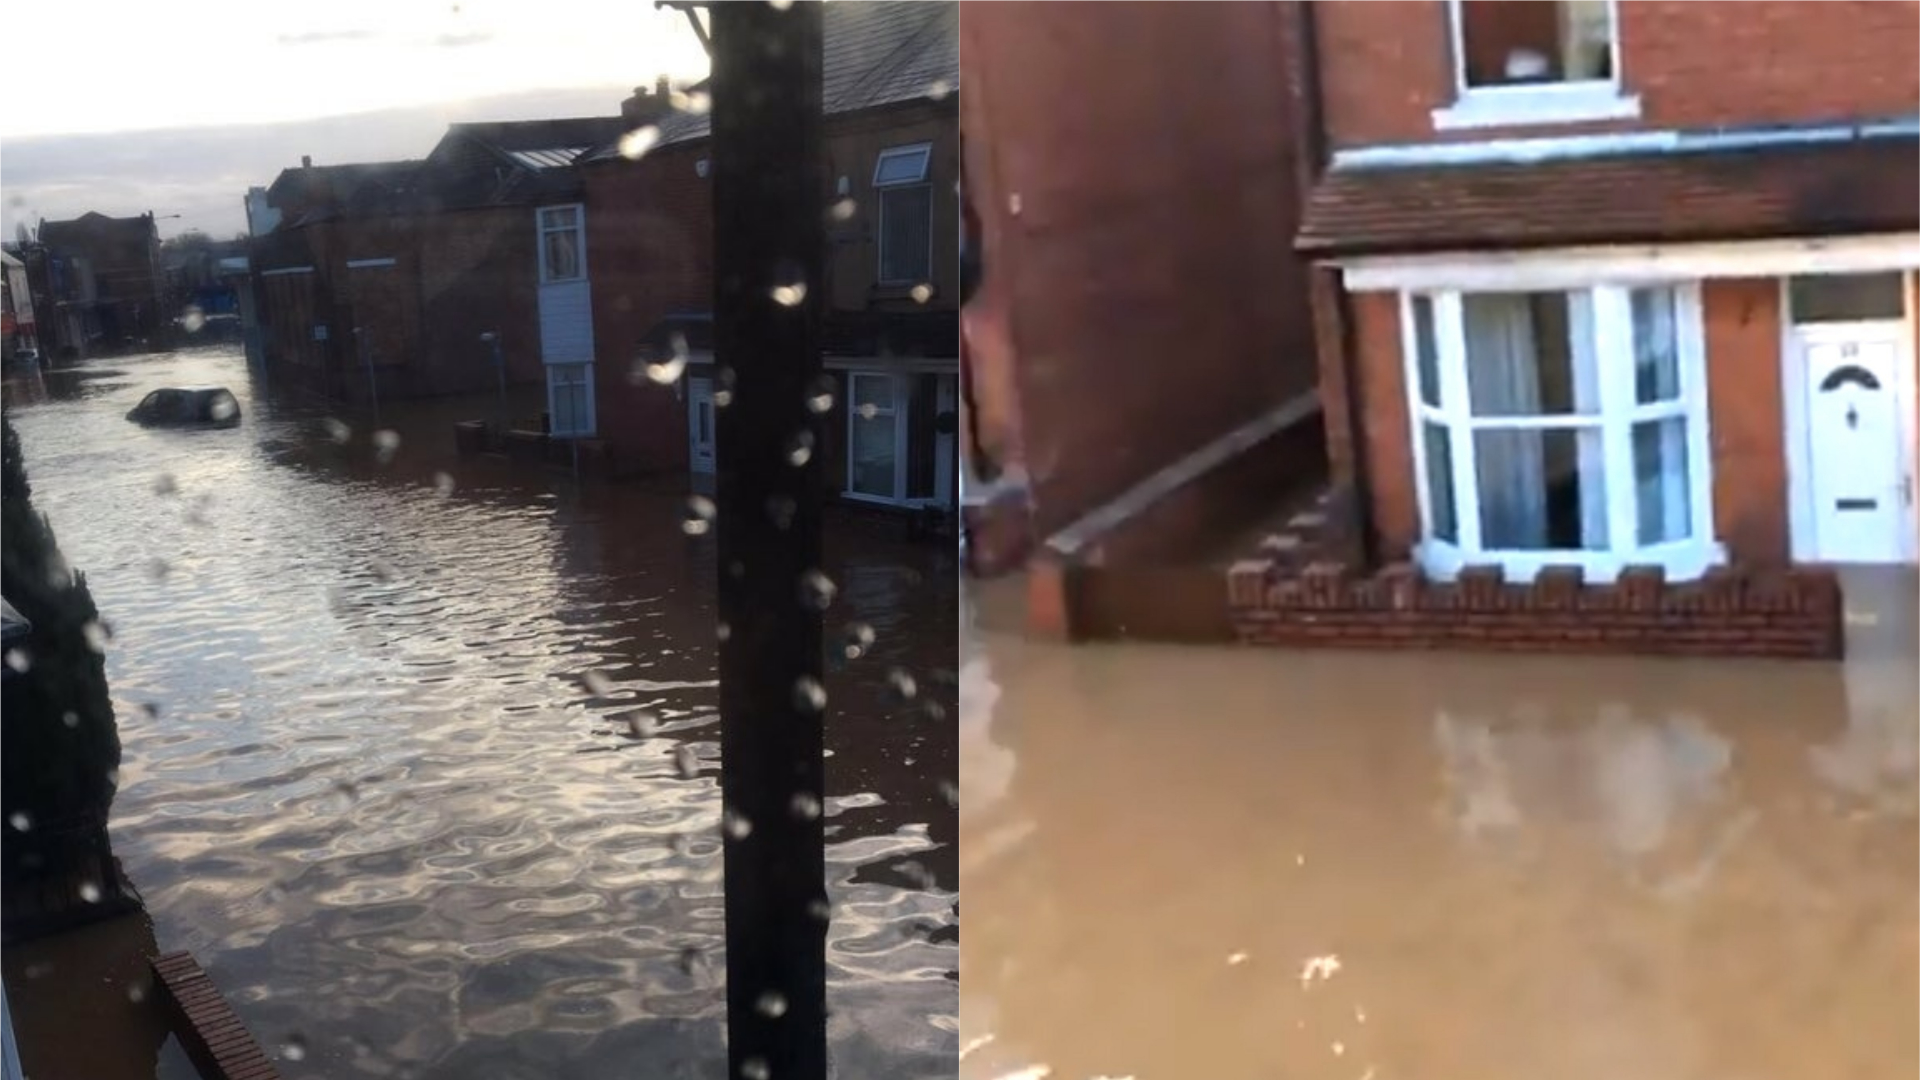 Flood waters on Central Avenue in Worksop